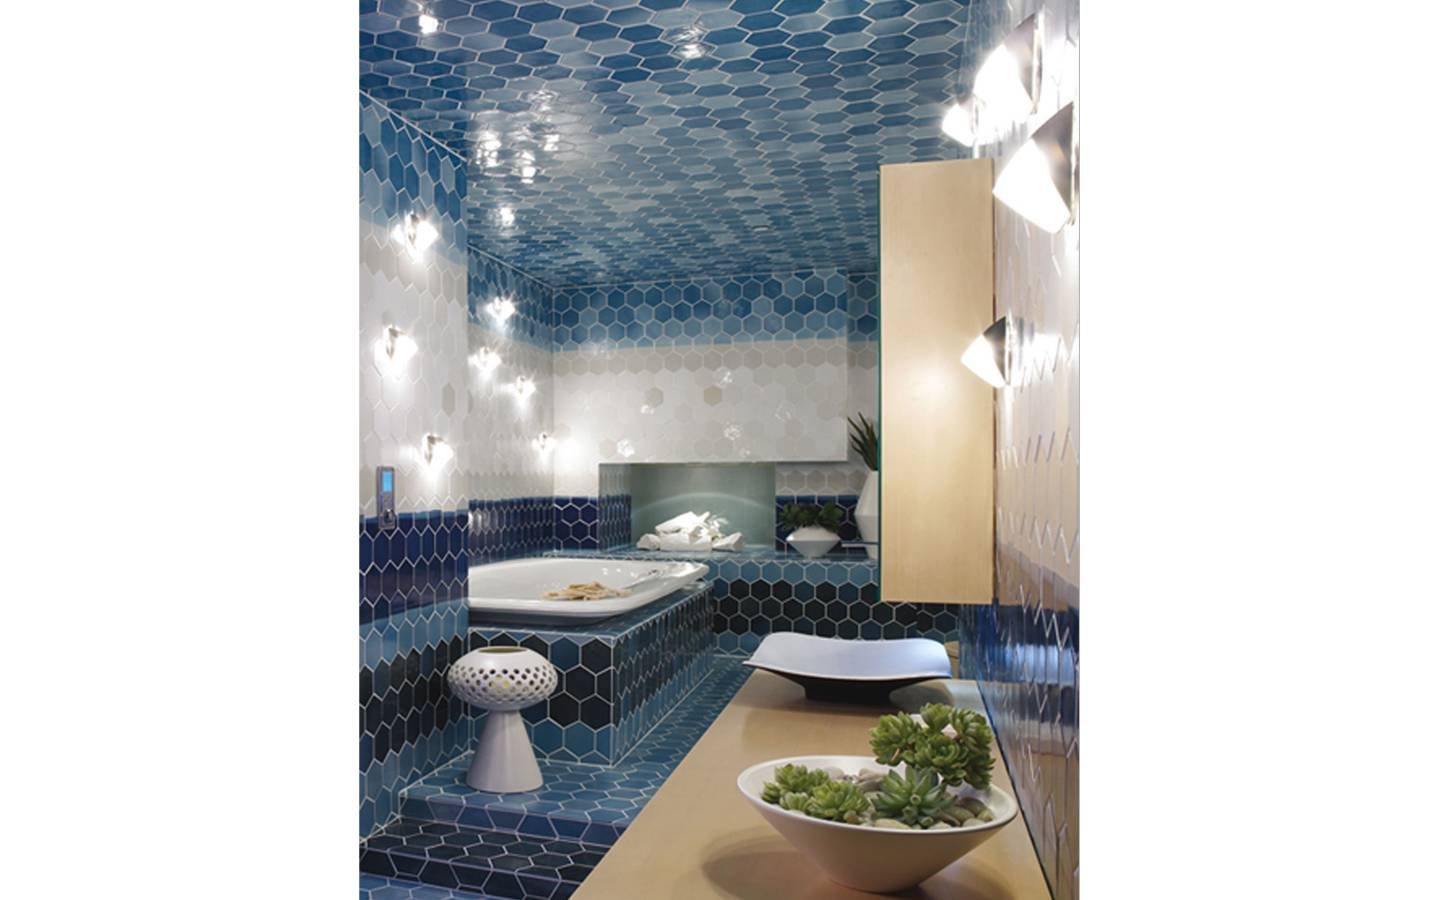 Kohler Showroom | Amy Lau Design